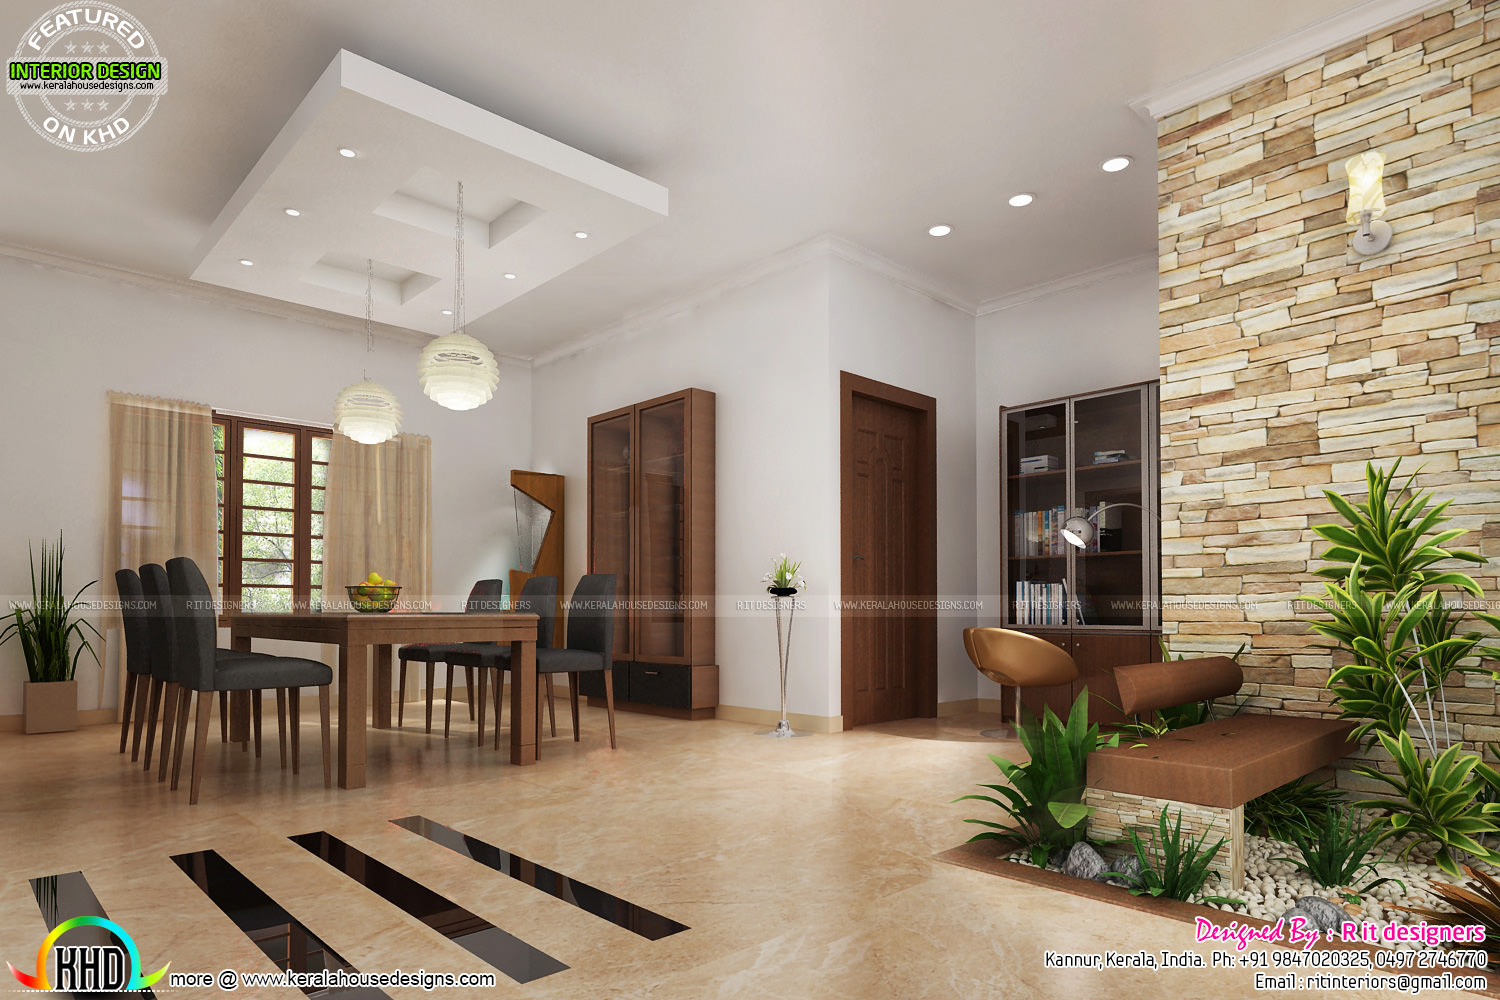 House interiors by R it designers - Kerala home design and ...